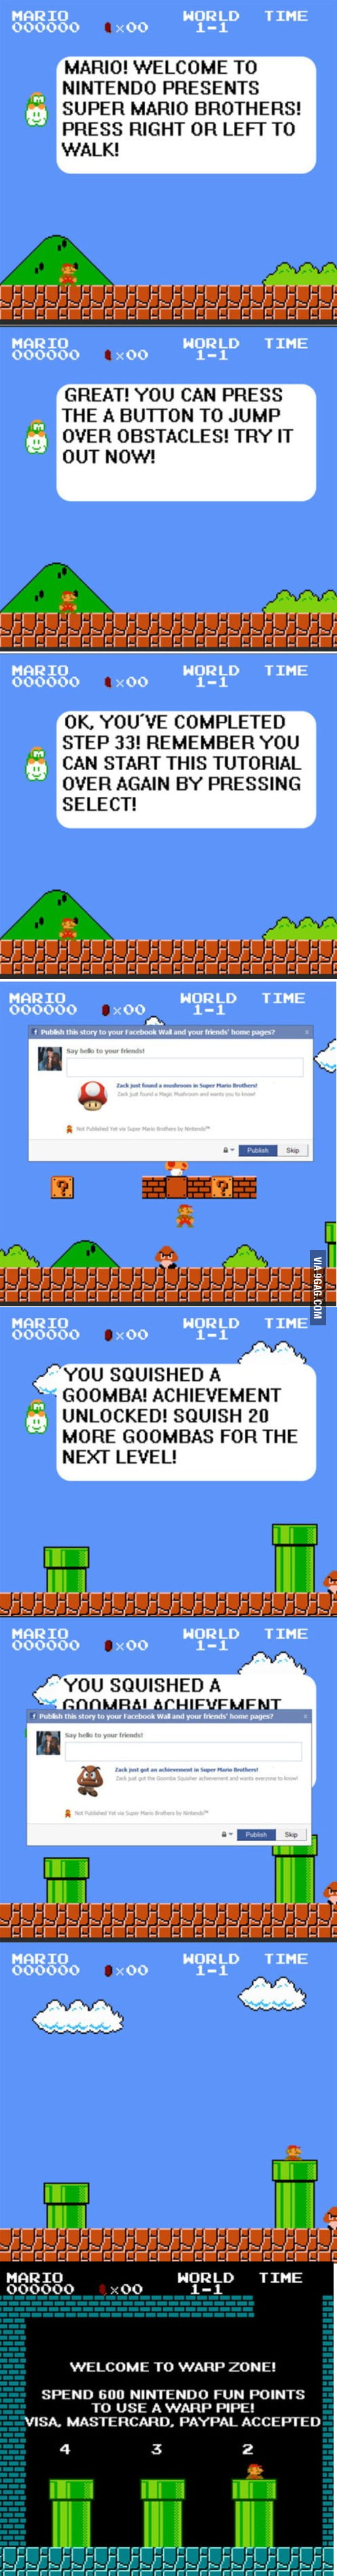 If the Mario game was to be created today: